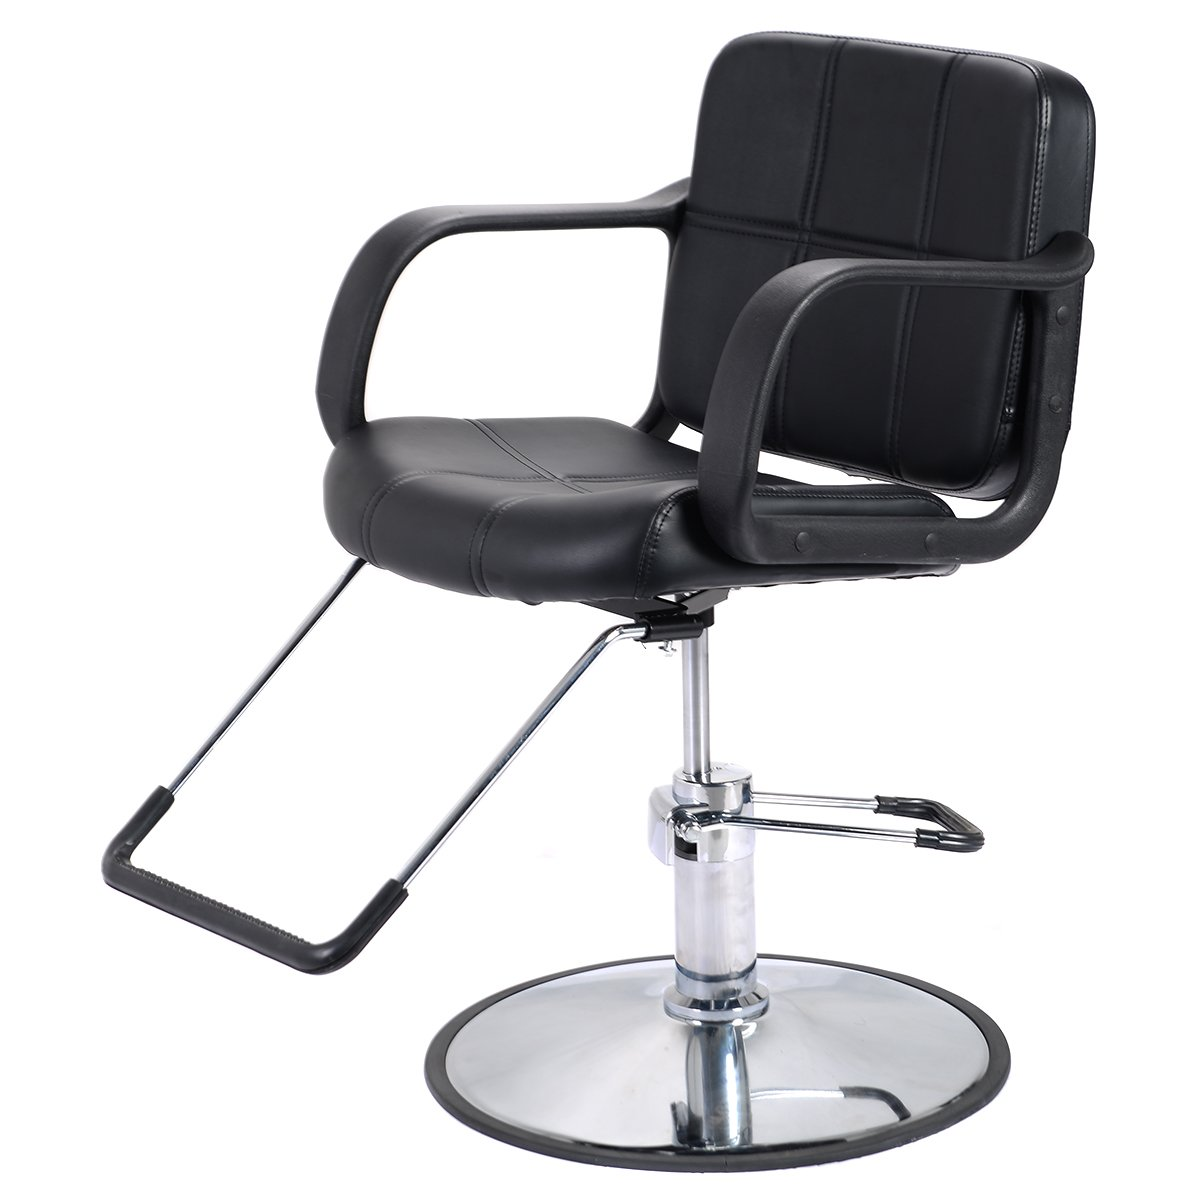 Costway Hydraulic Barber Chair Classic/Reclining 2 Types Available Salon Spa Shaving Tattoo Haircut Hairdressing Styling Equipment 360 Degree Swivel Black (C)